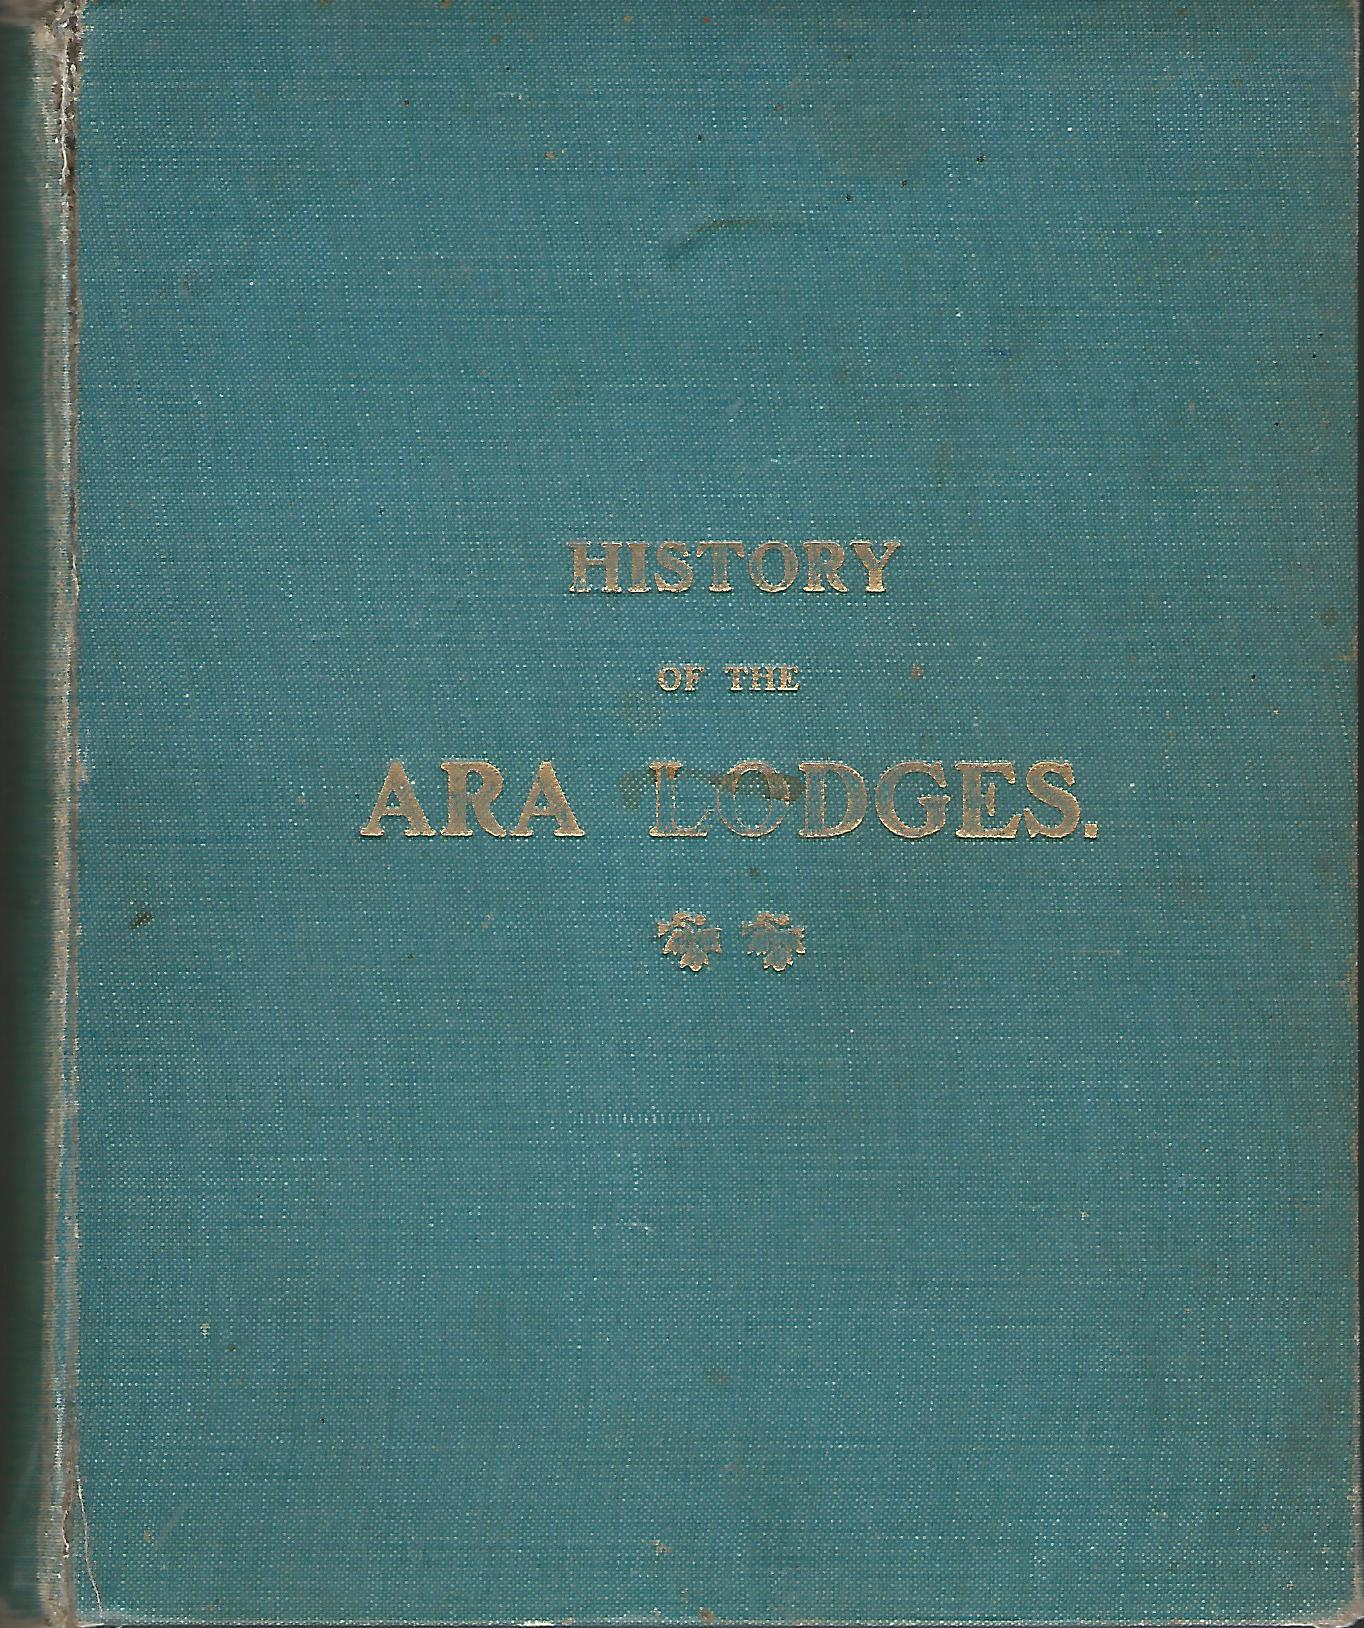 Image for The History of the Ara Lodges.